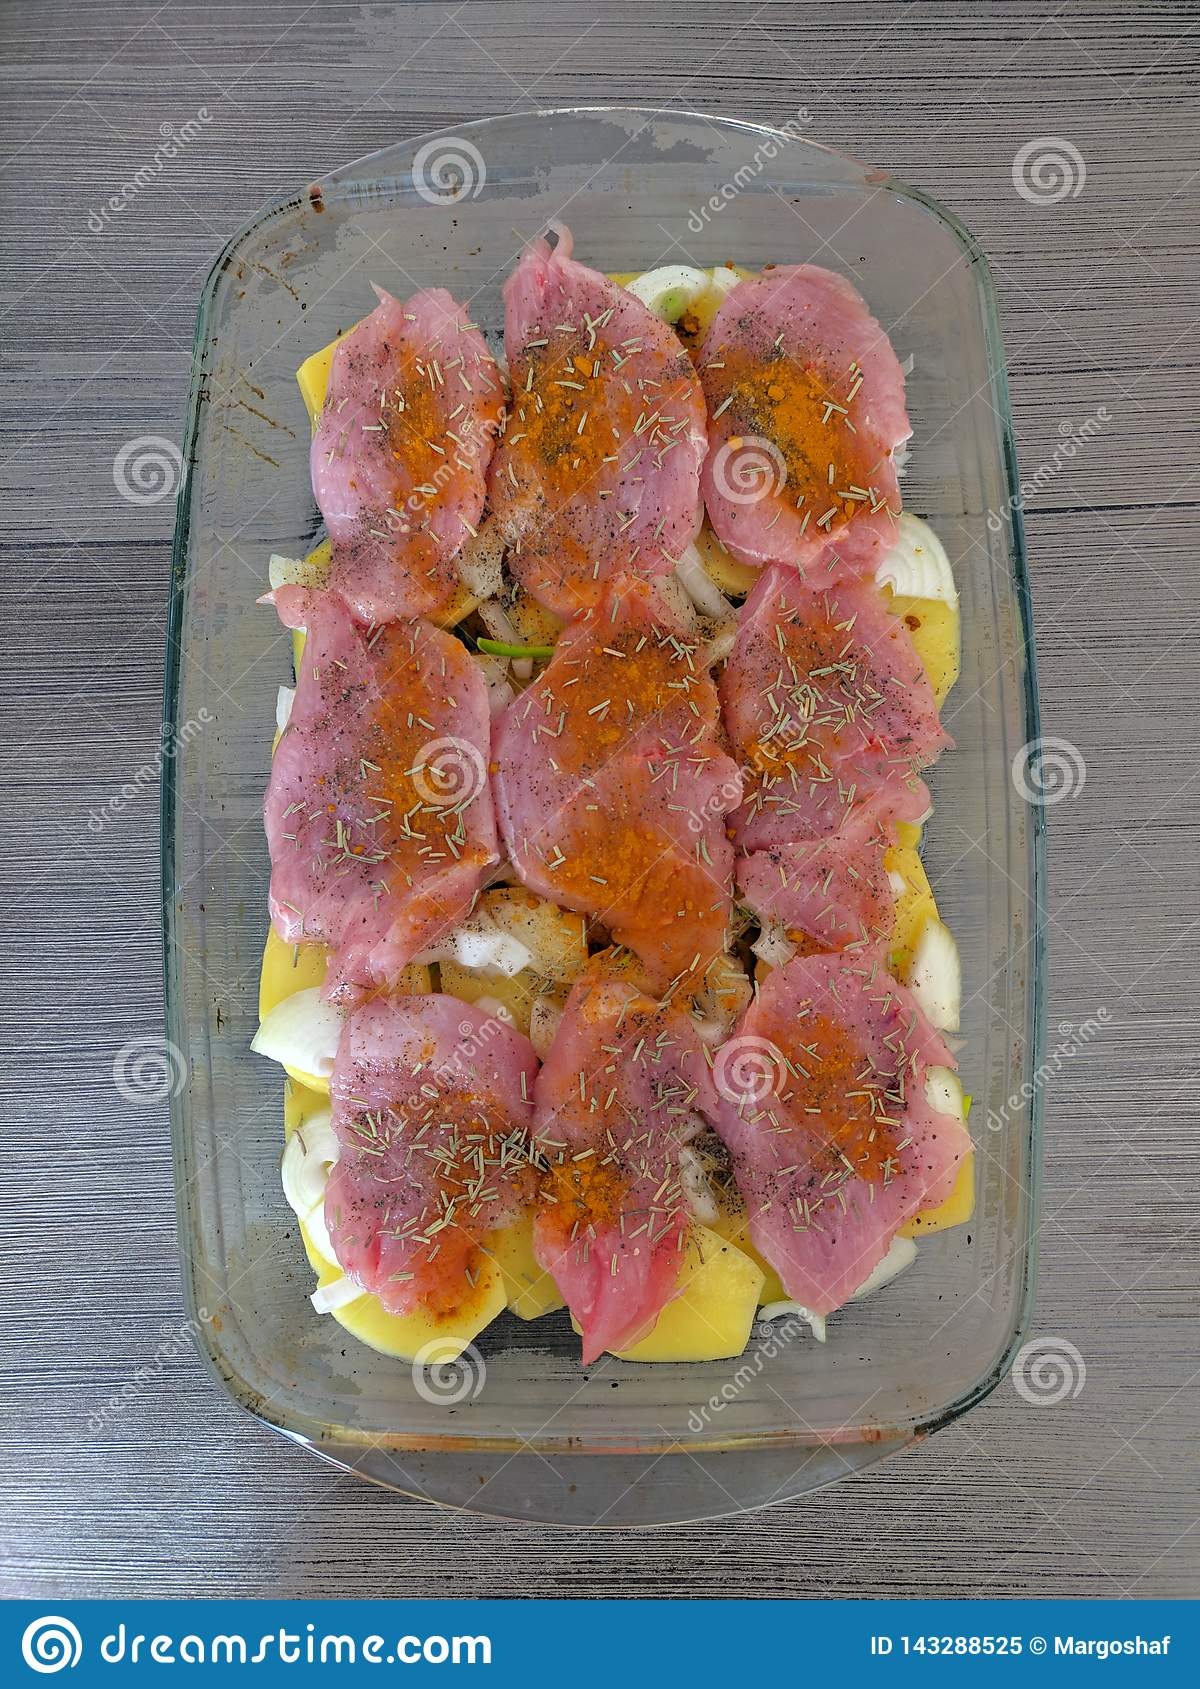 Raw turkey meat marinated with herbs and spices and vegetables - onion, potato in baken roaster before baking. Brown wooden